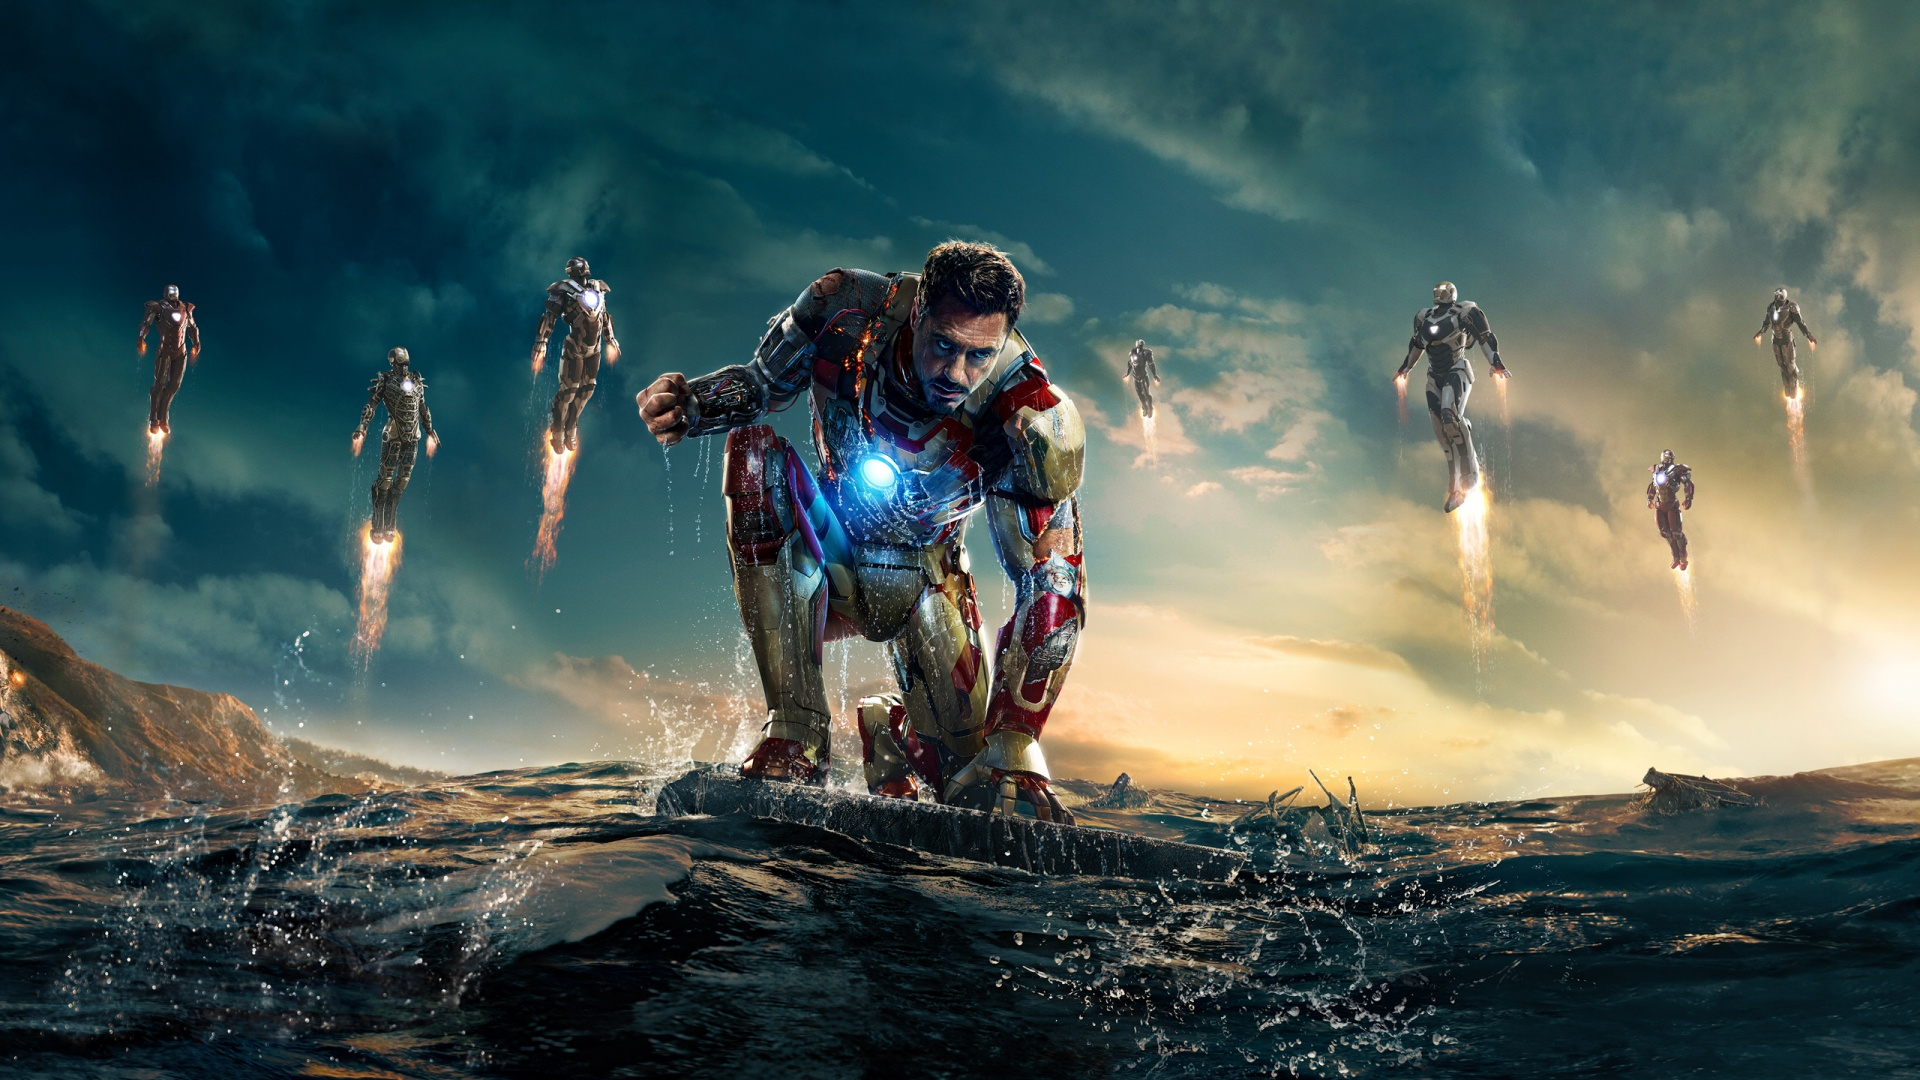 wallpaper | iron man 3 2013 wallpaper 1080p | 1080 Hd Wallpapers